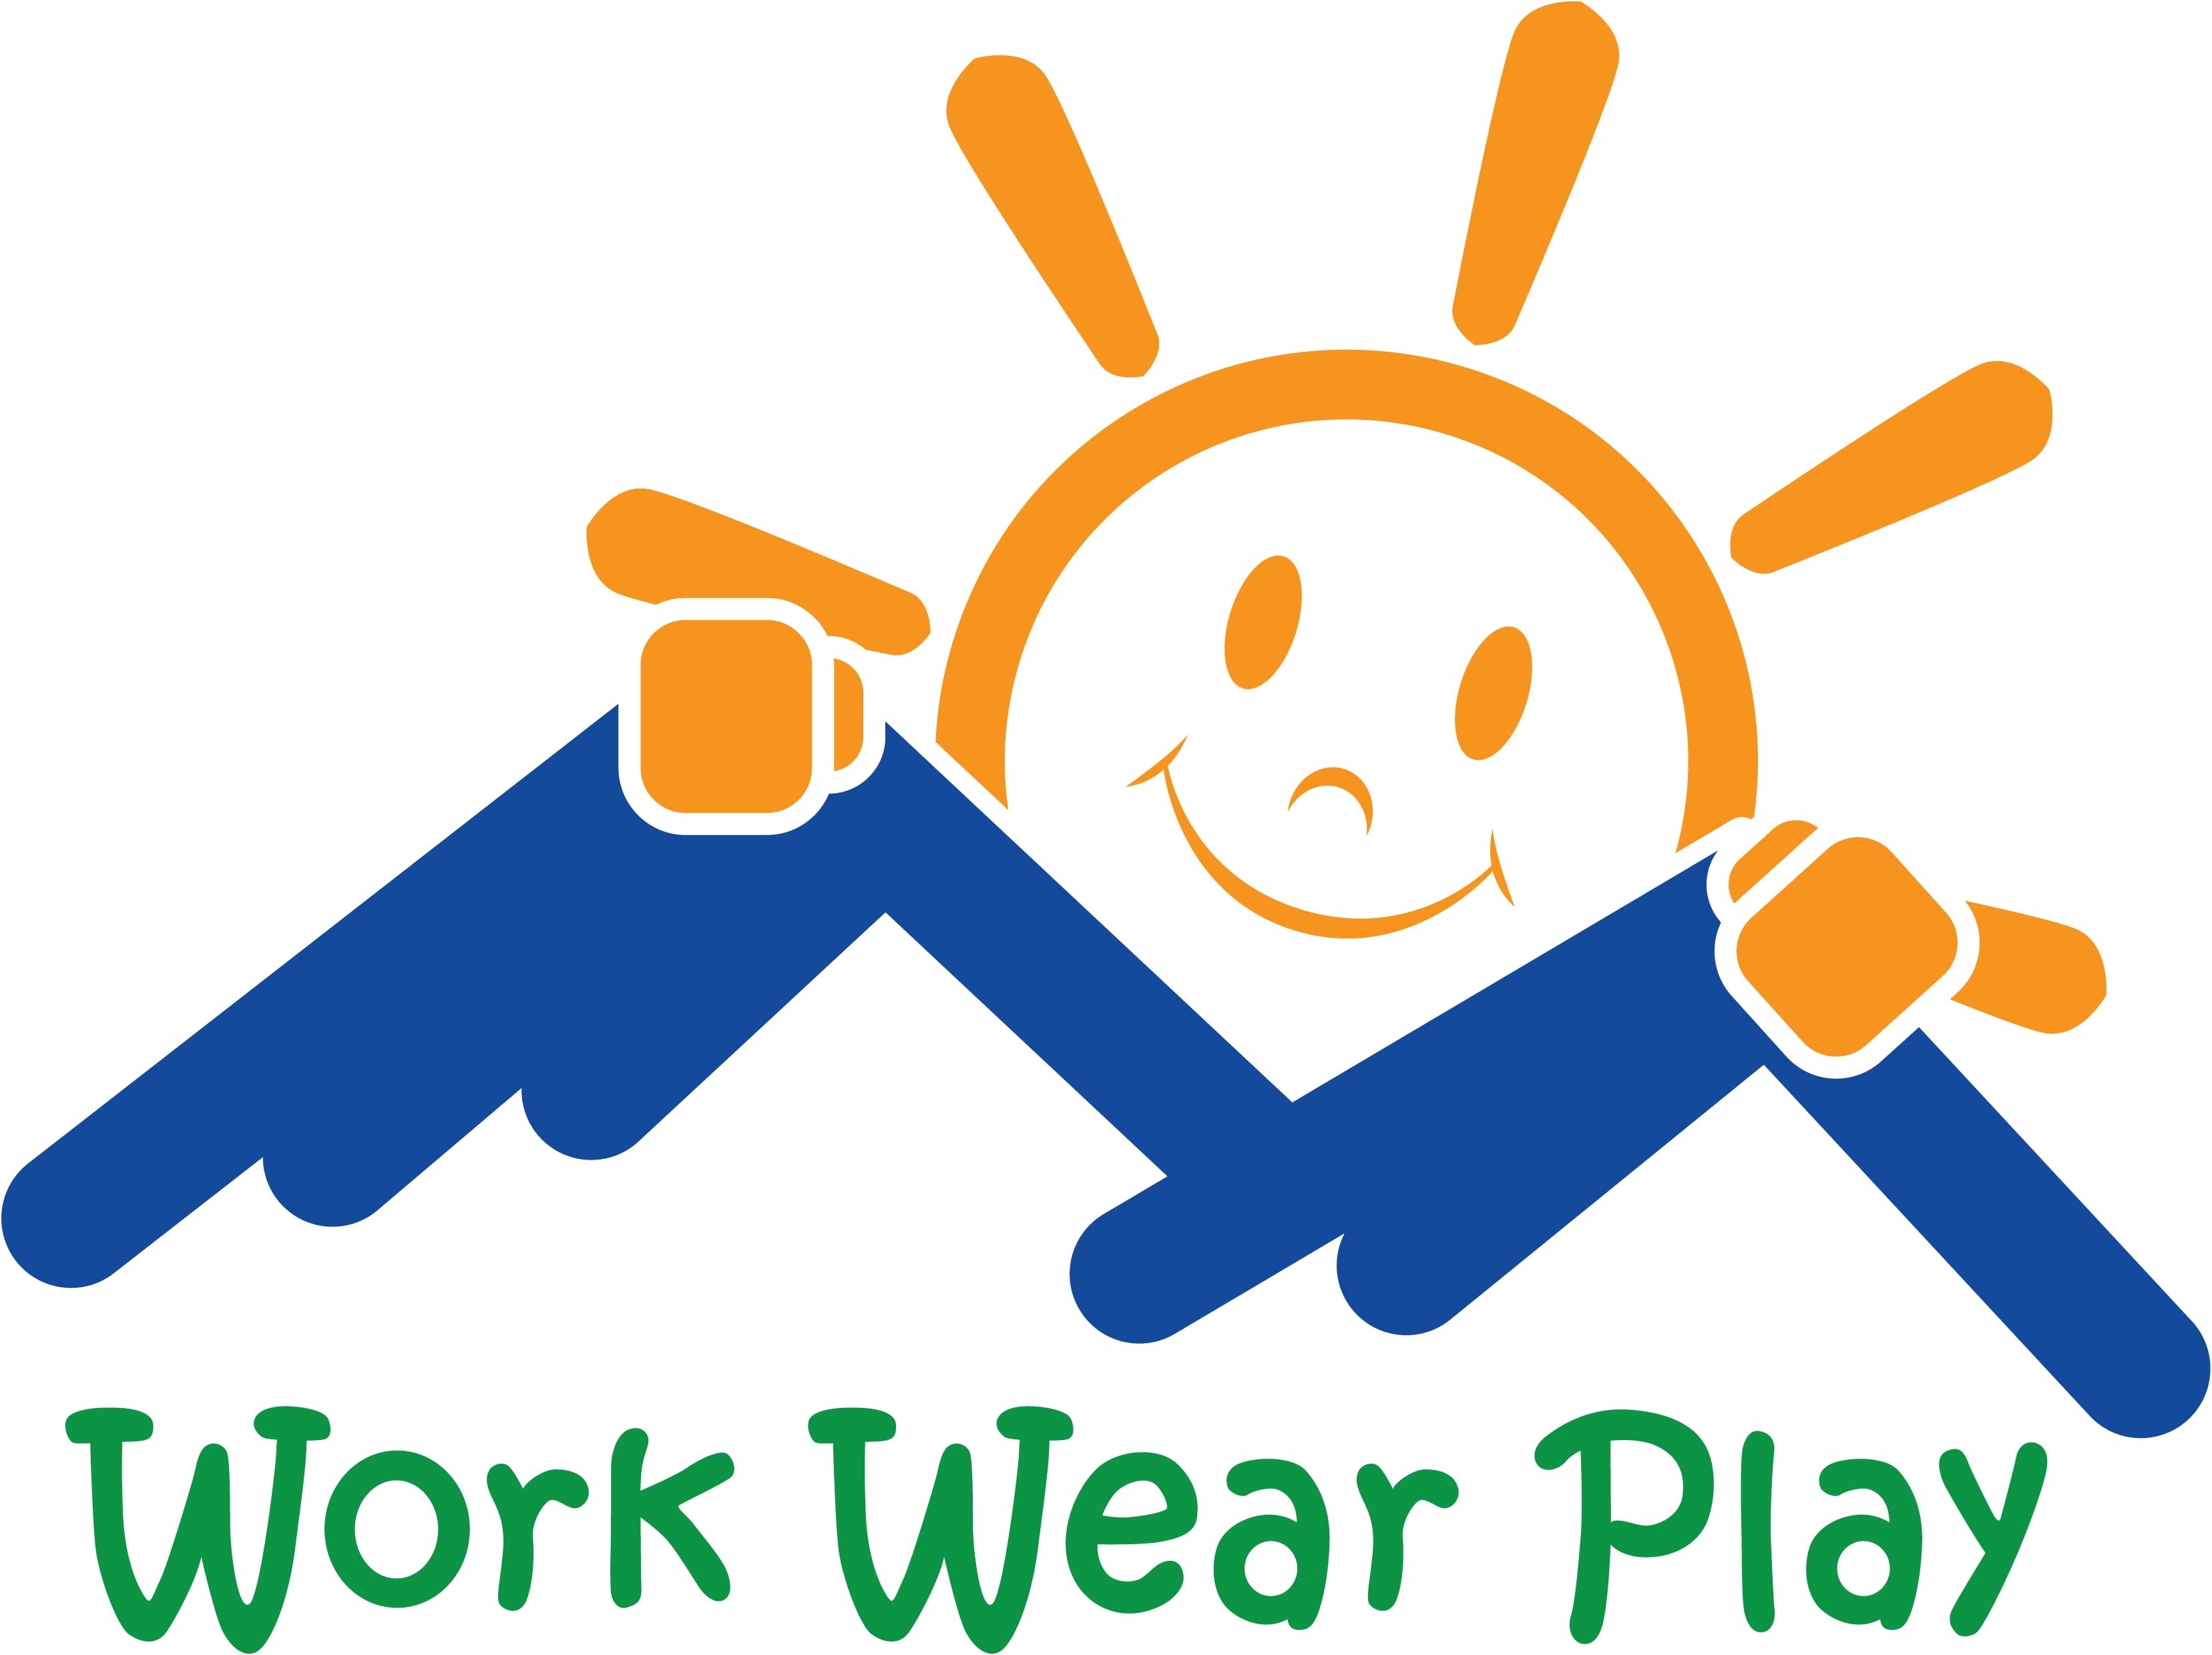 WorkWearPlay